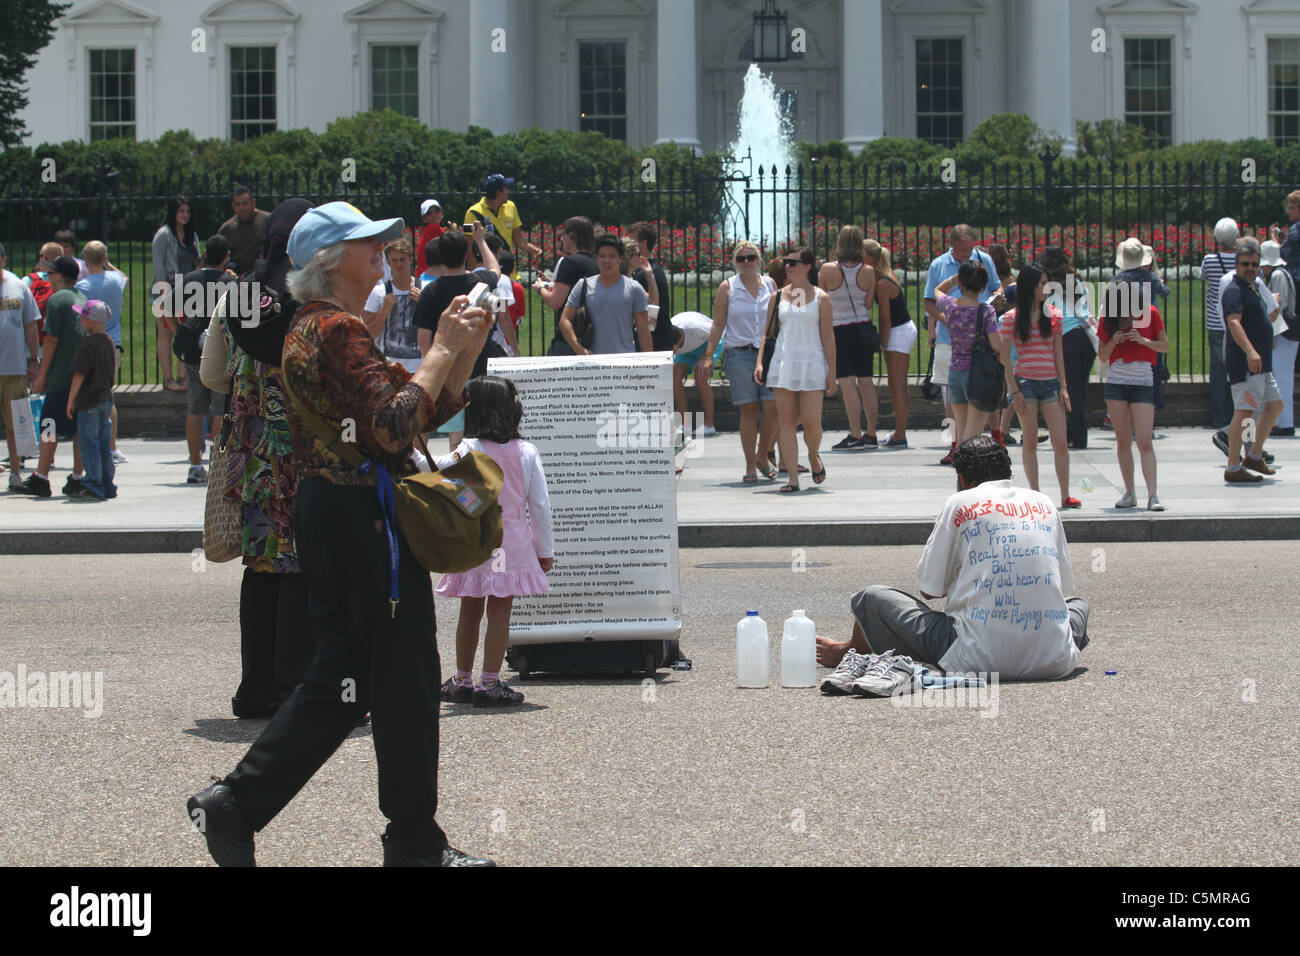 Muslim foot-washing protester in front of White House - Stock Image